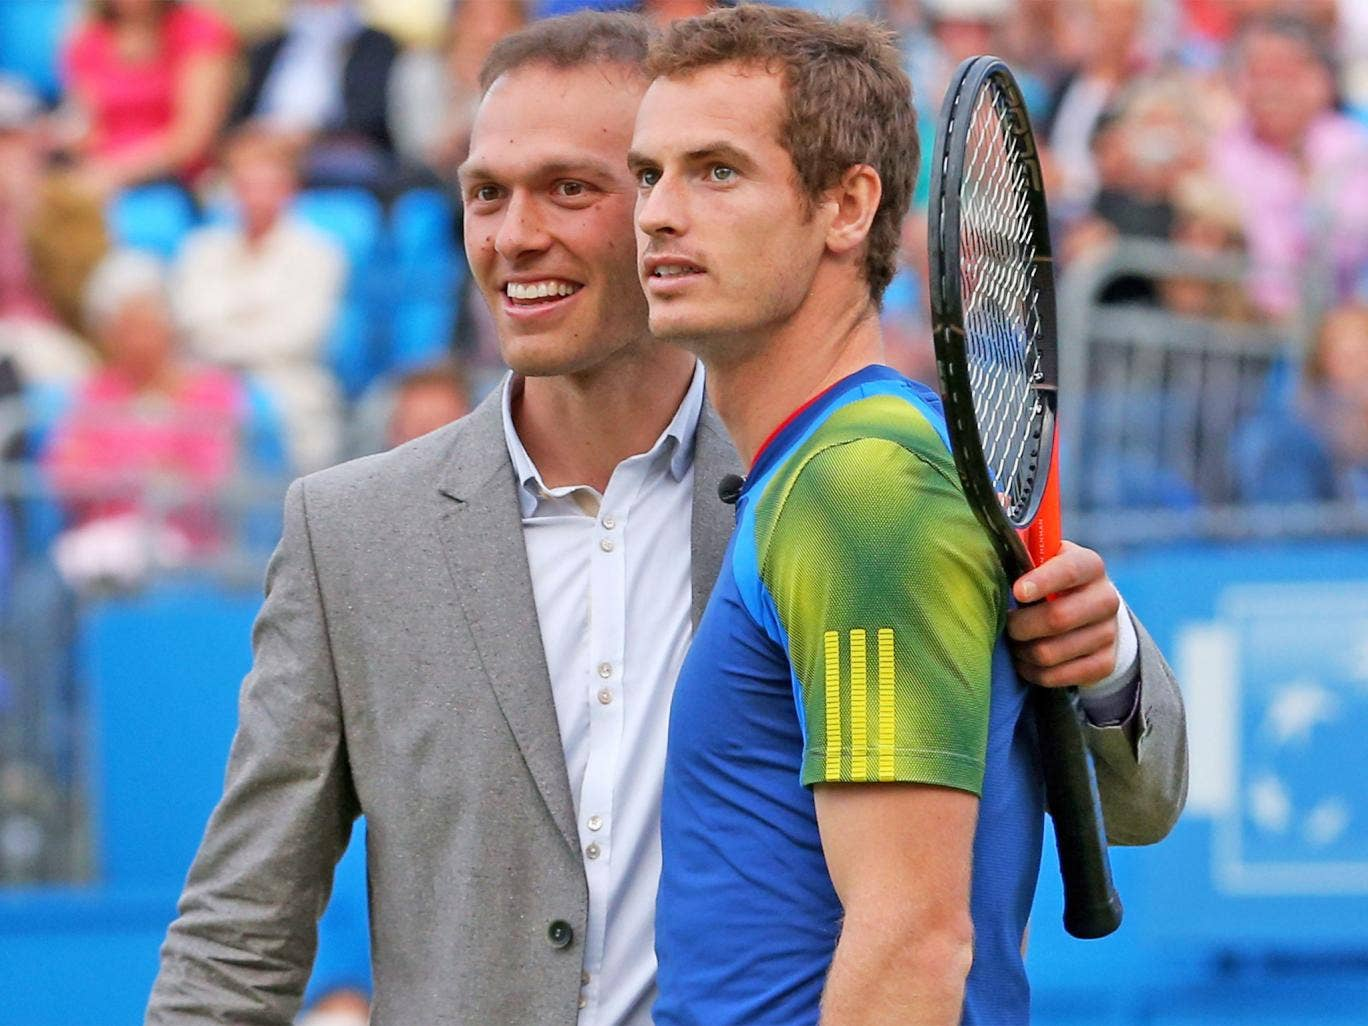 Ross Hutchins (left) hugs Andy Murray after a tennis match in aid of a cancer charity